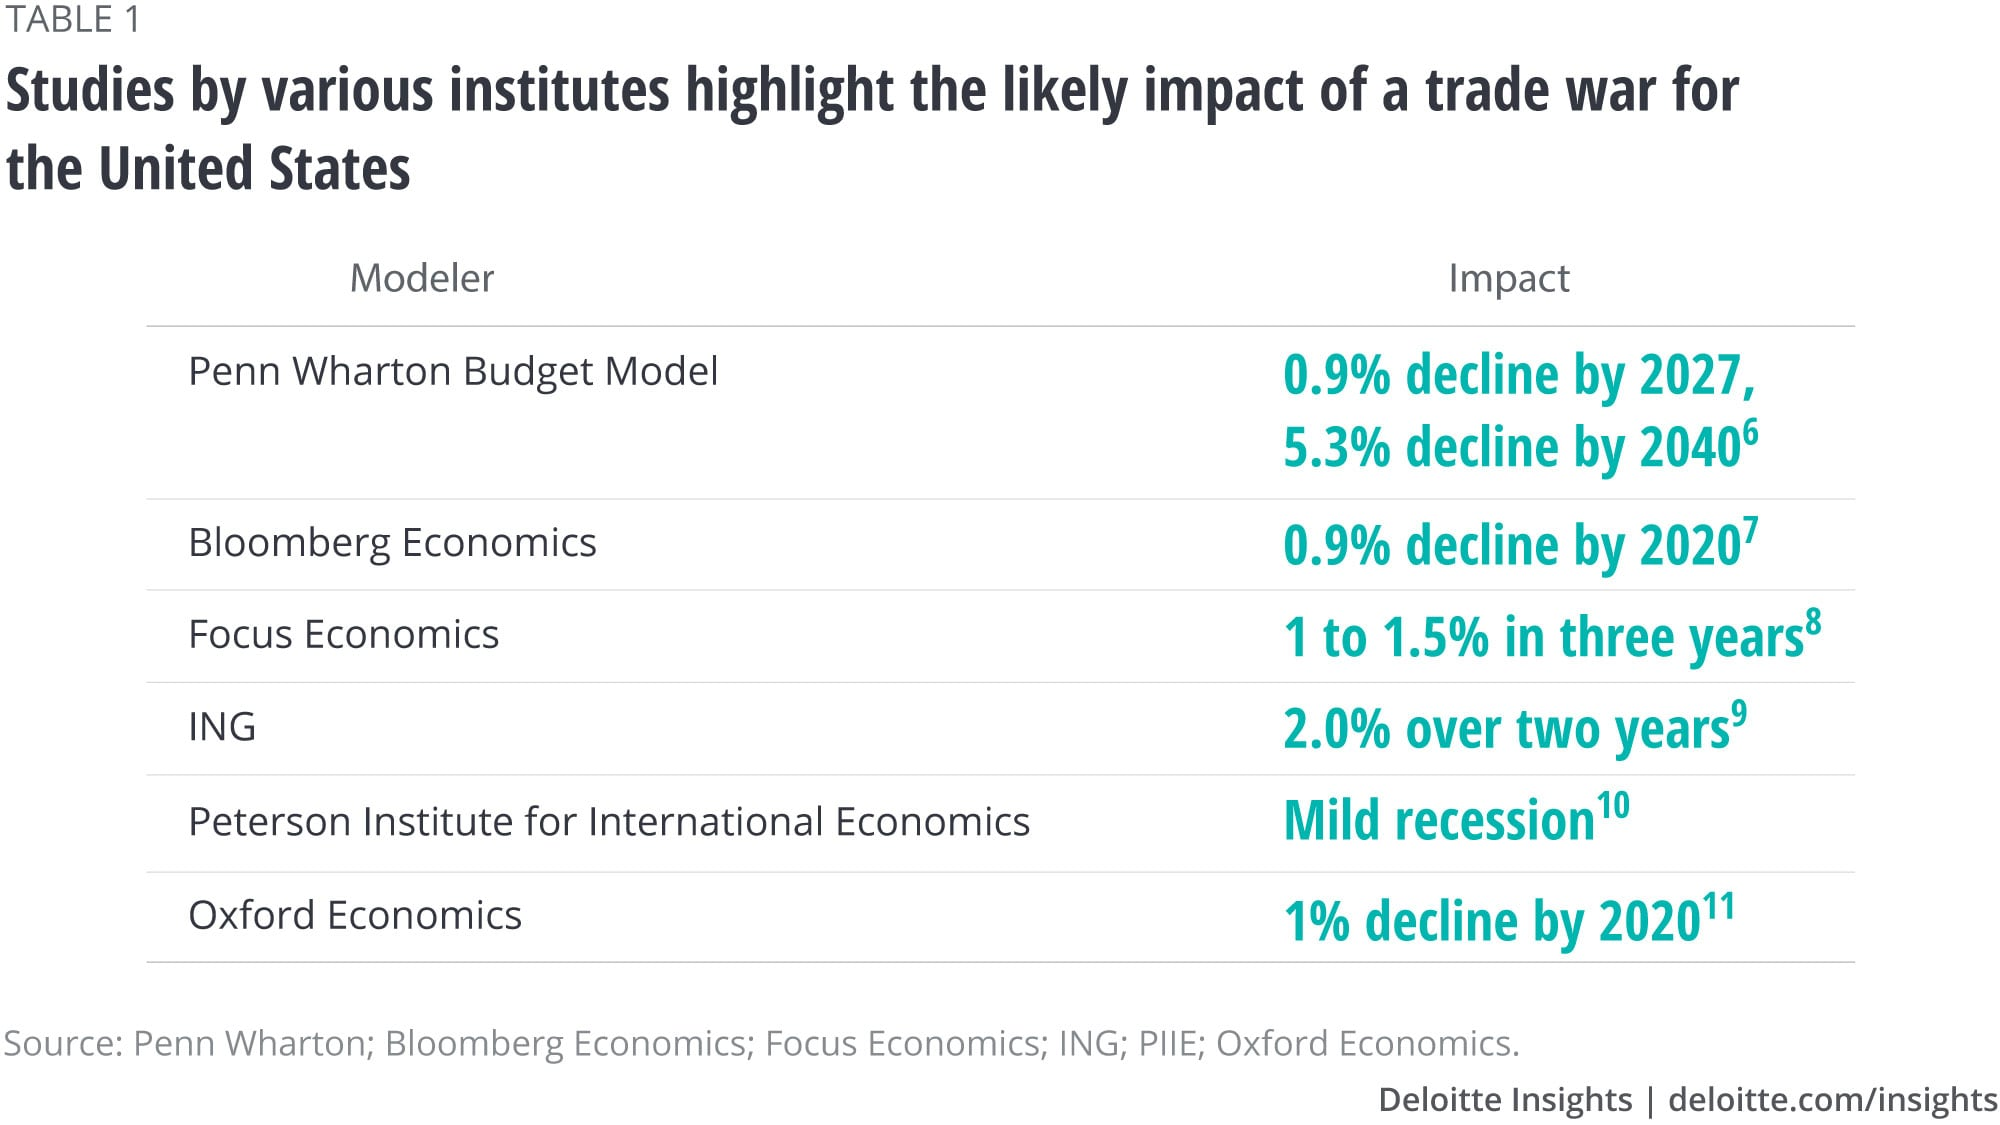 Studies by various institutes highlight the likely impact of a trade war for the United States